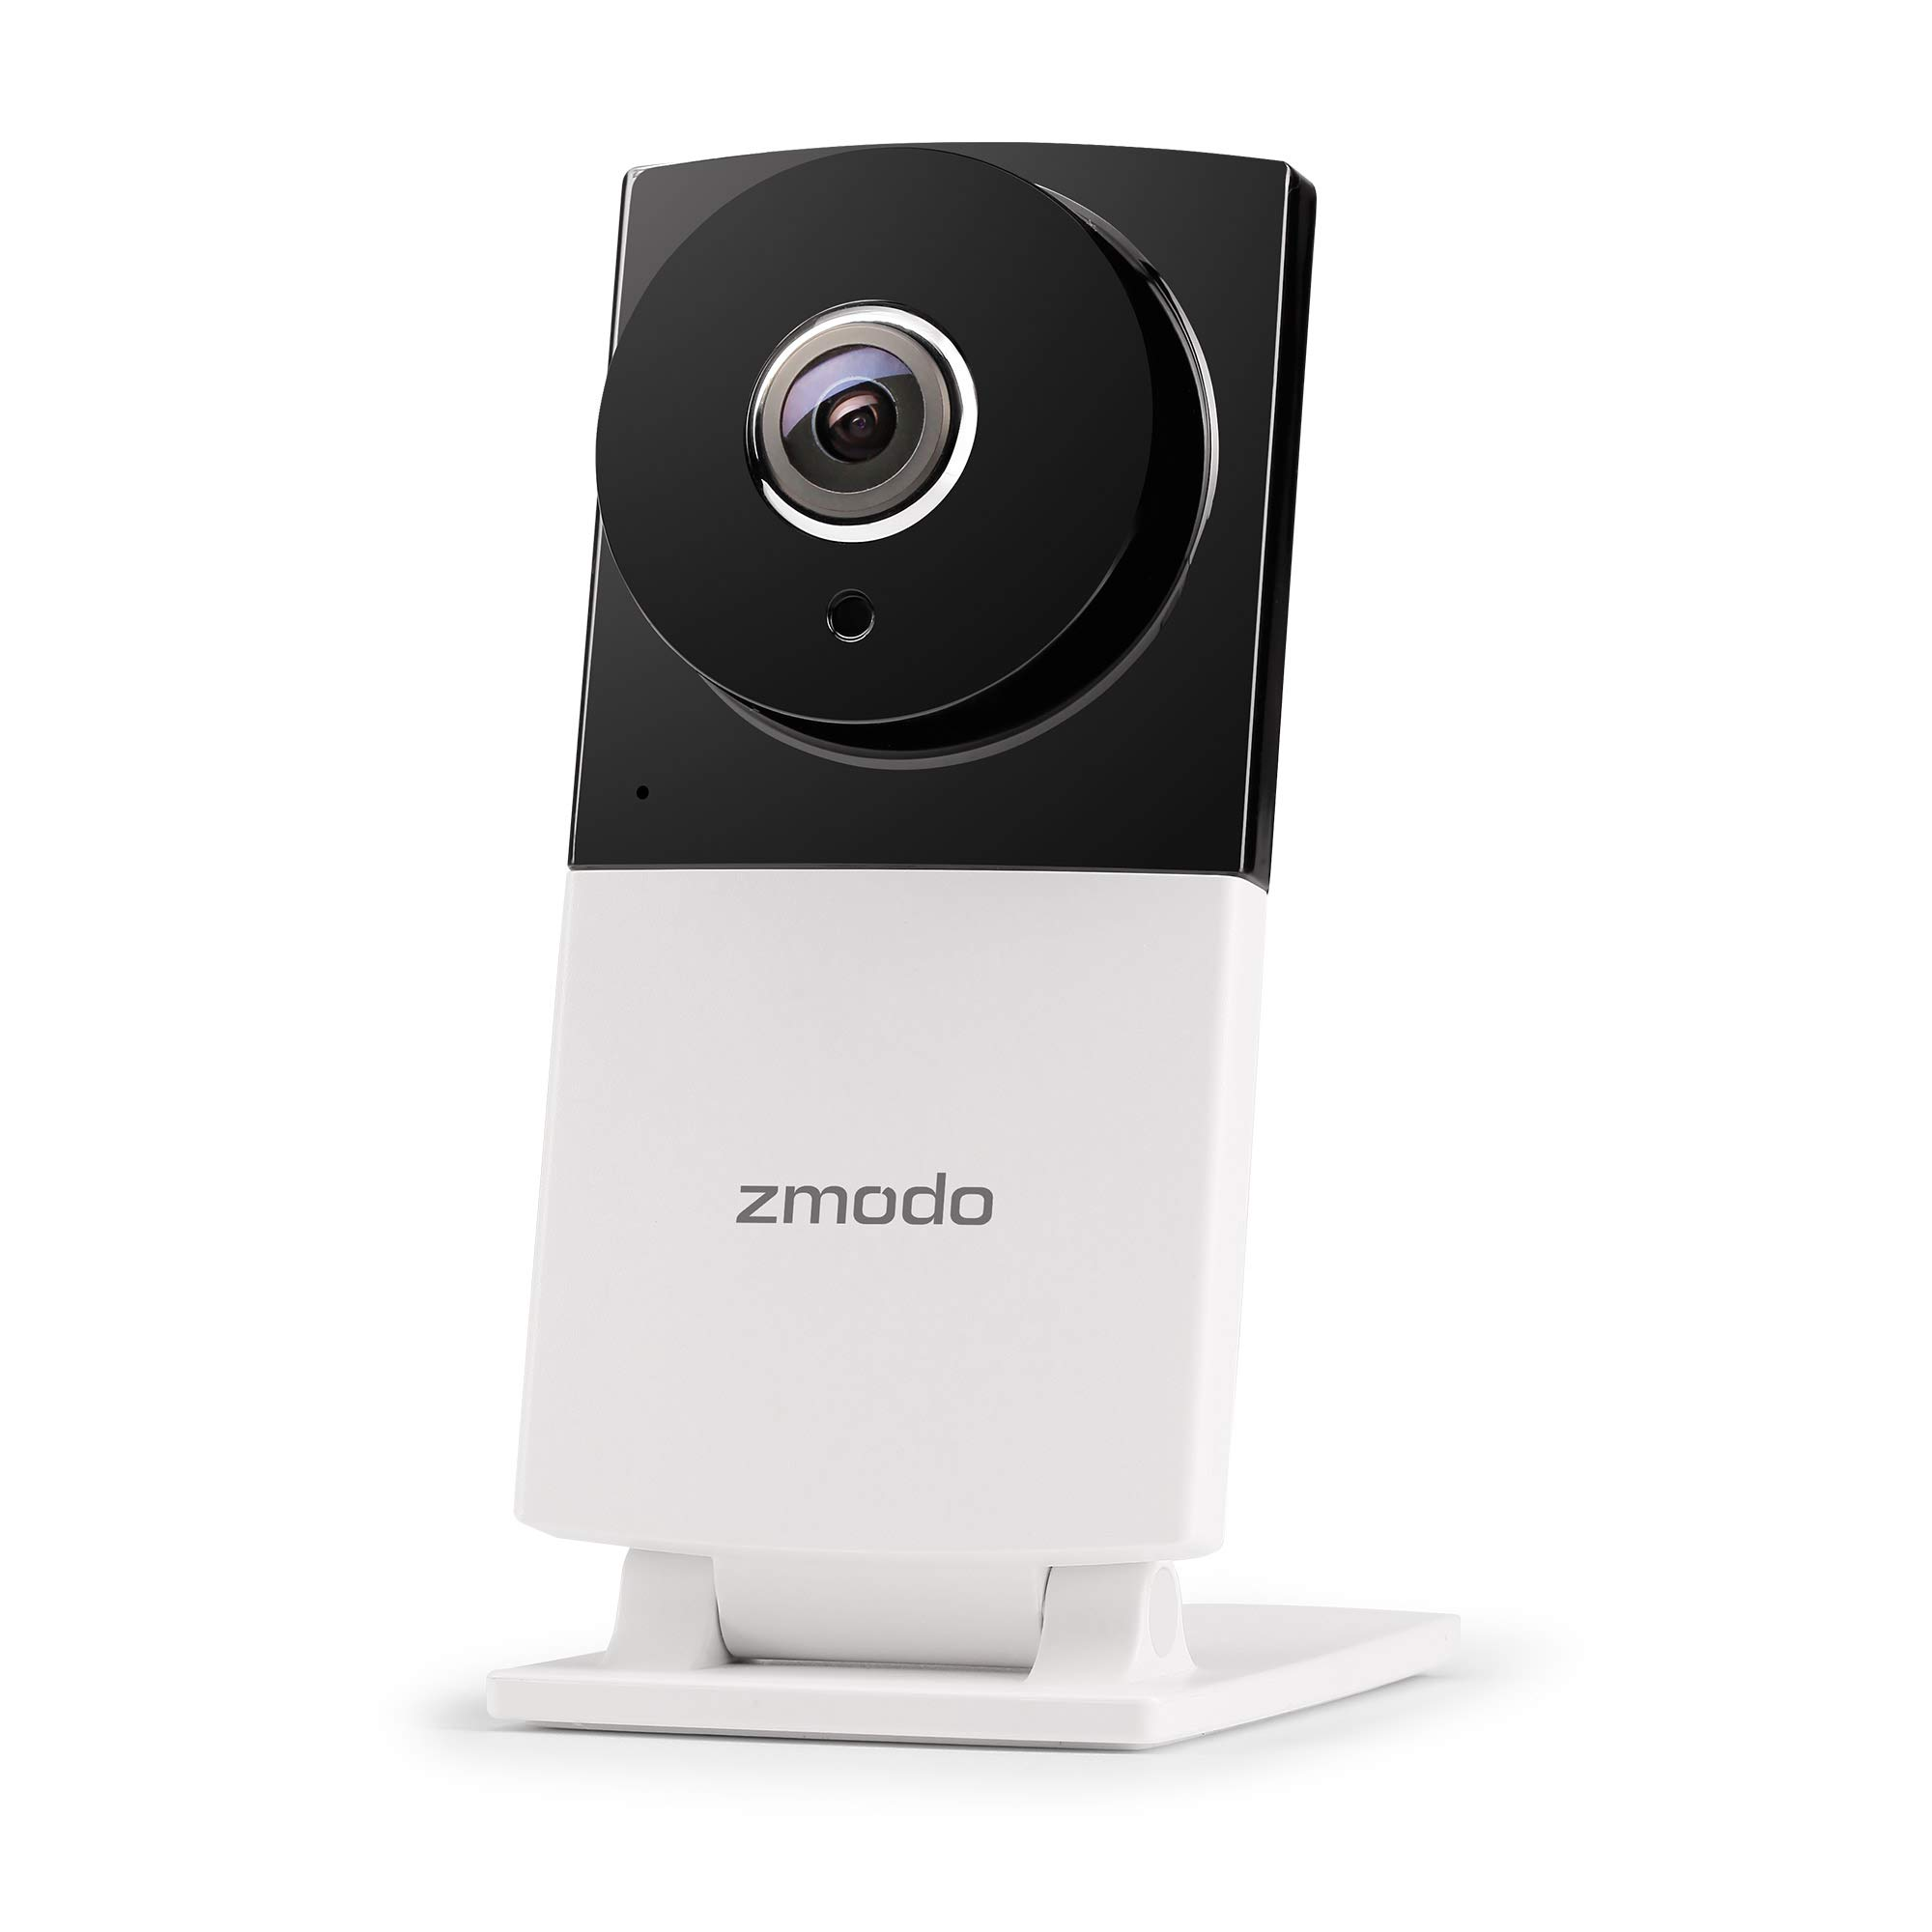 Zmodo 1080p Wide Angle 180 Degrees Wireless Two Way Audio Home Security Camera by Zmodo